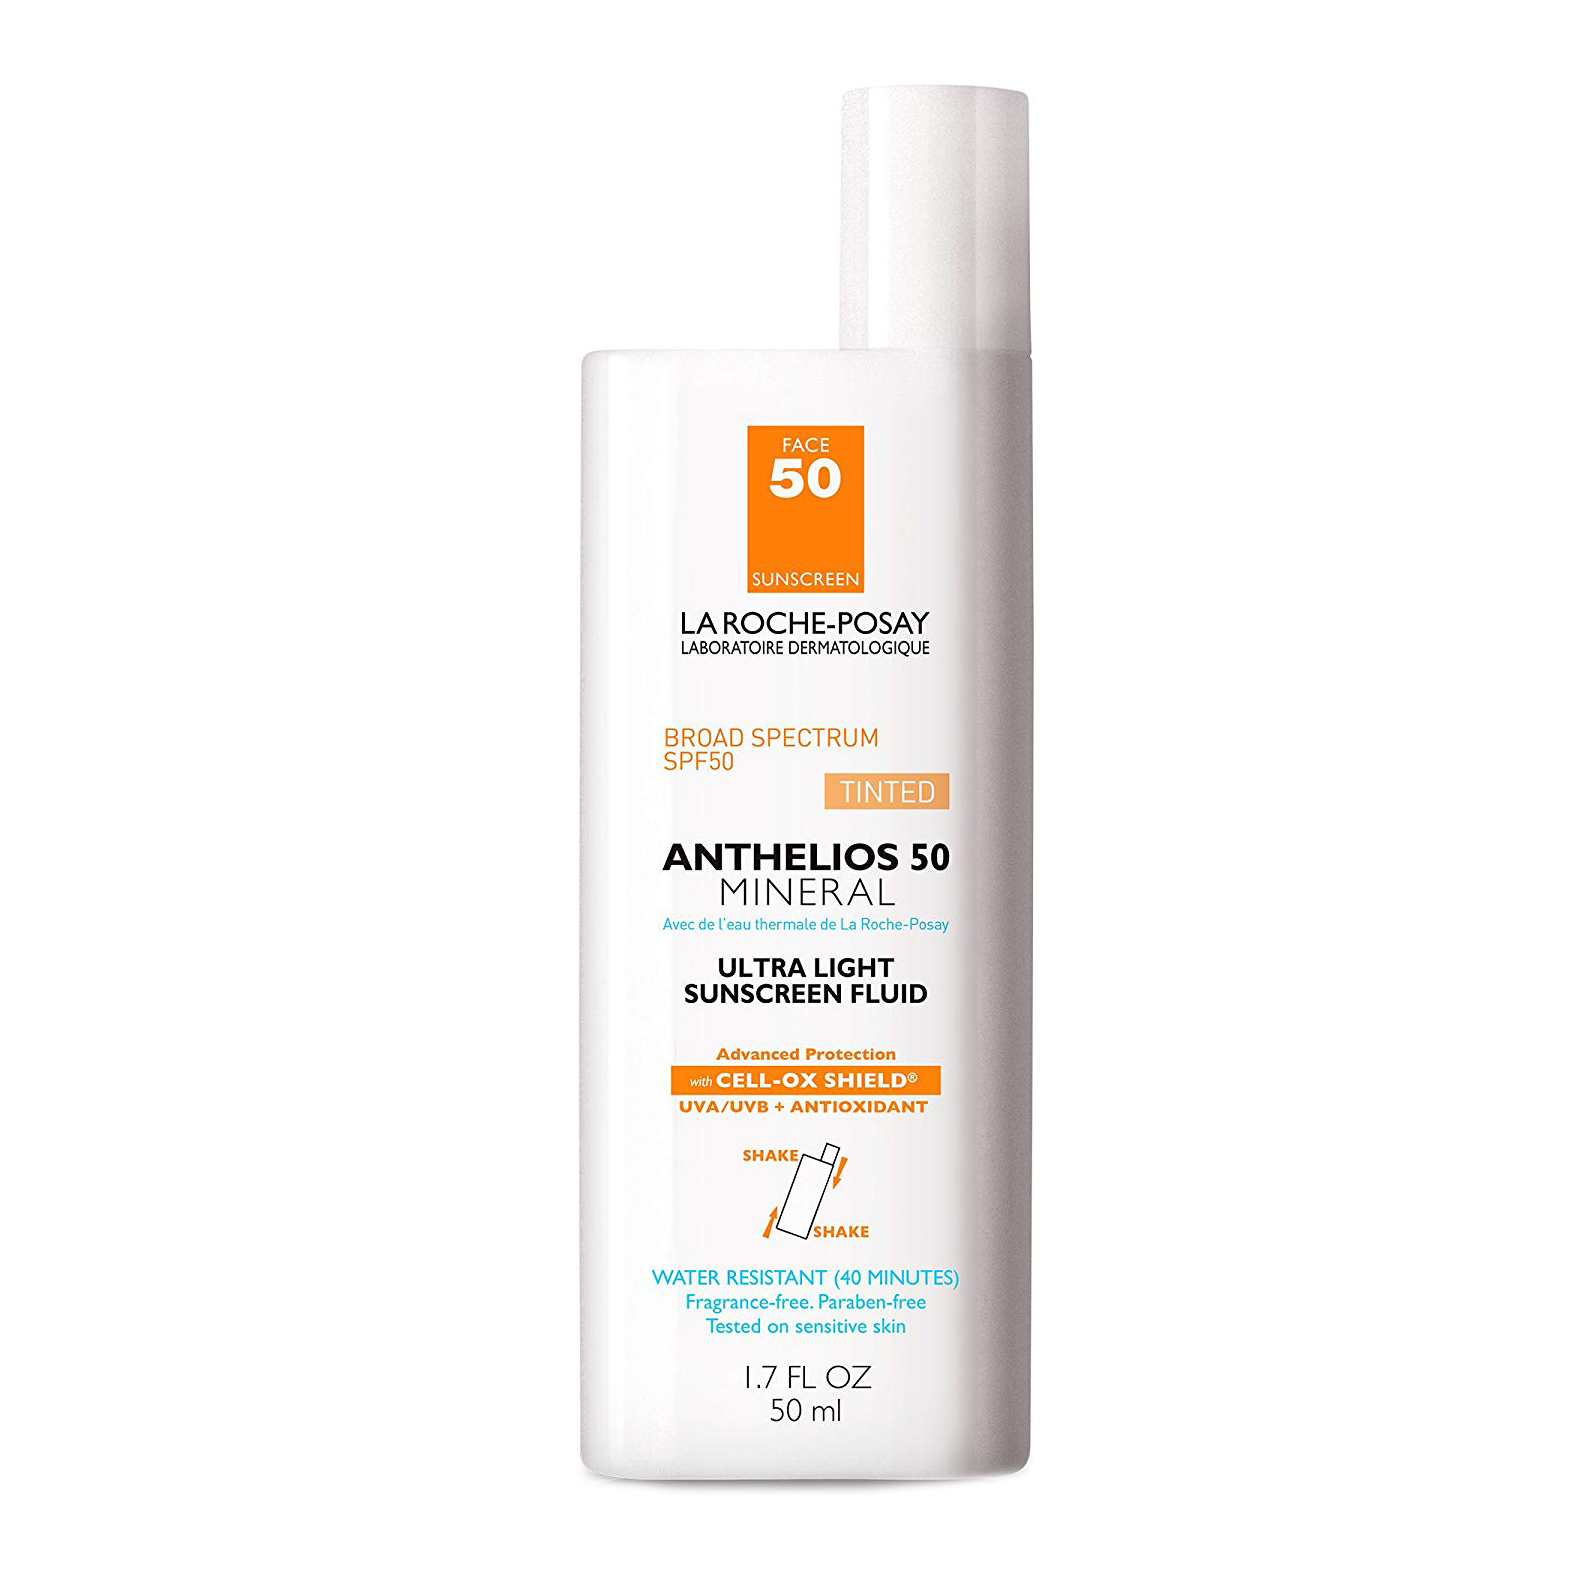 La Roche-Posay Anthelios Tinted Mineral